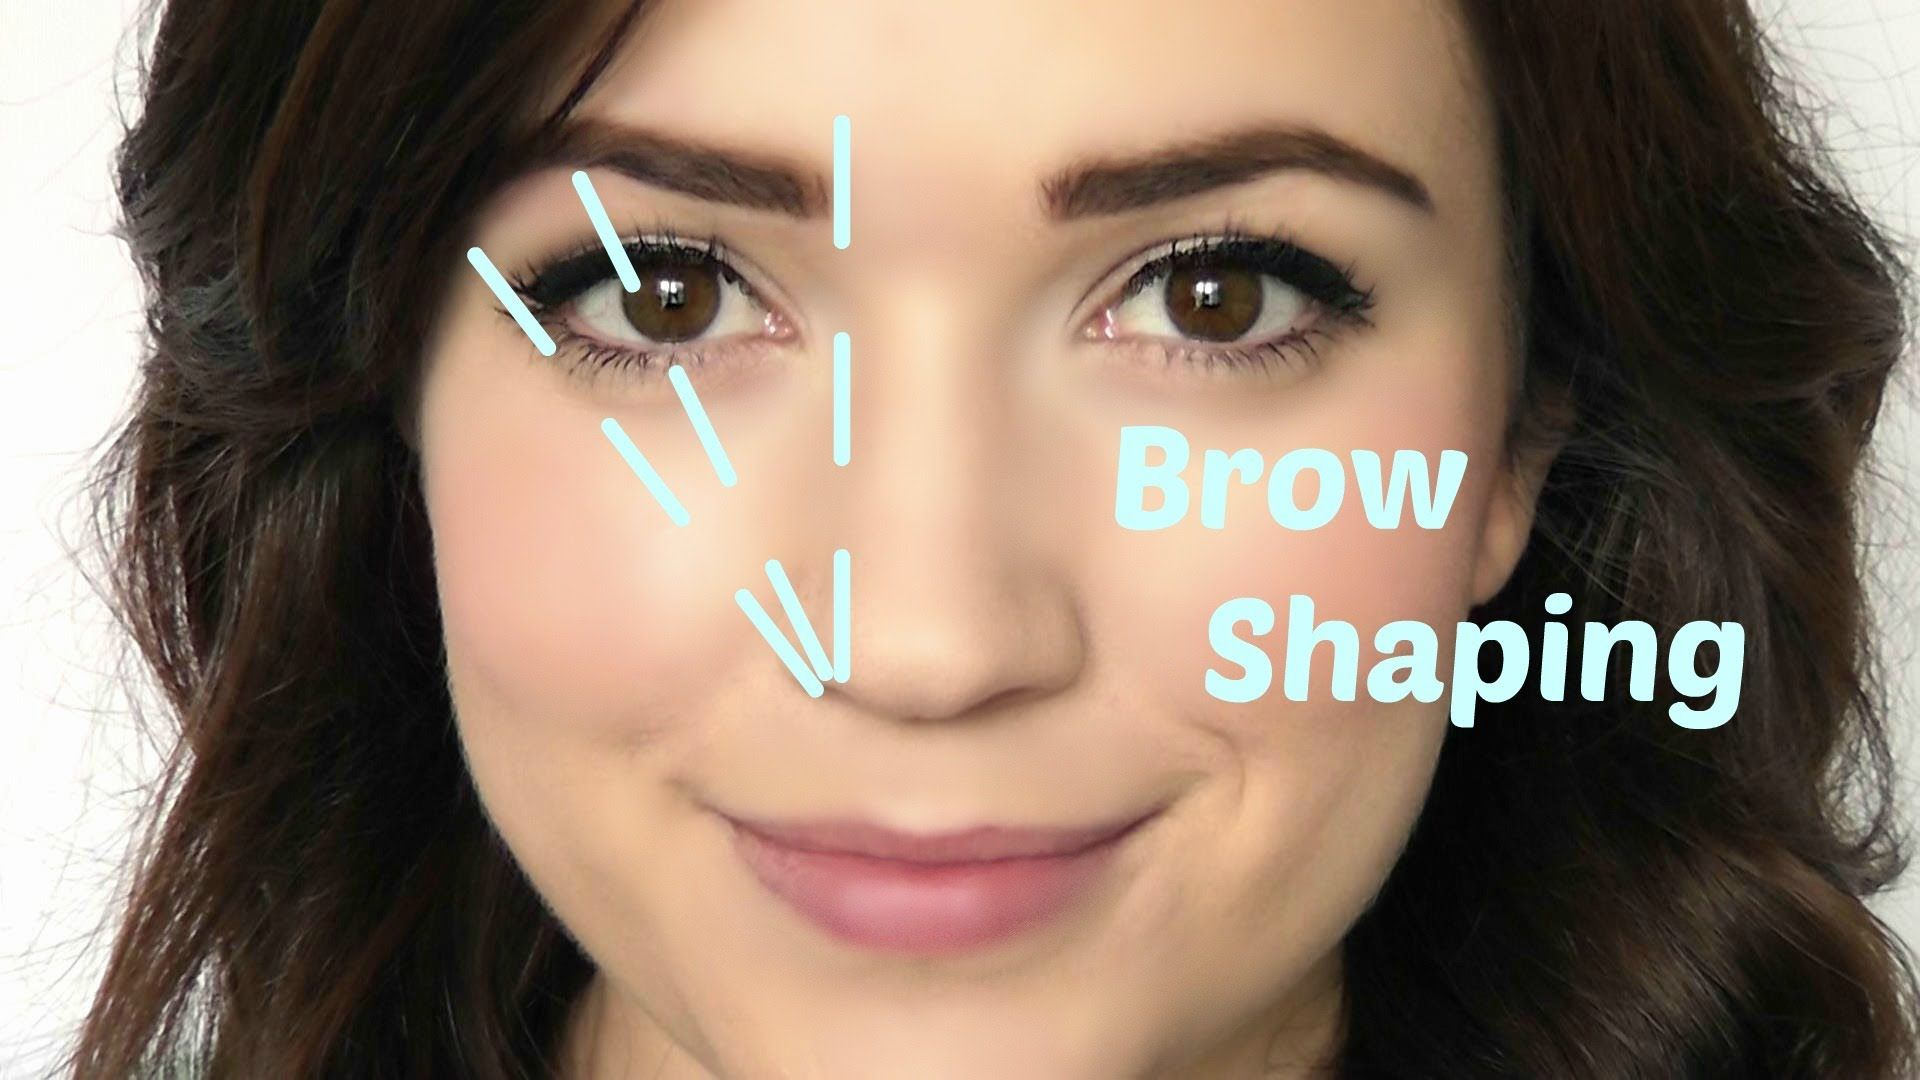 Getting The Right Eyebrow Shape Can Seem Tricky At The Start But